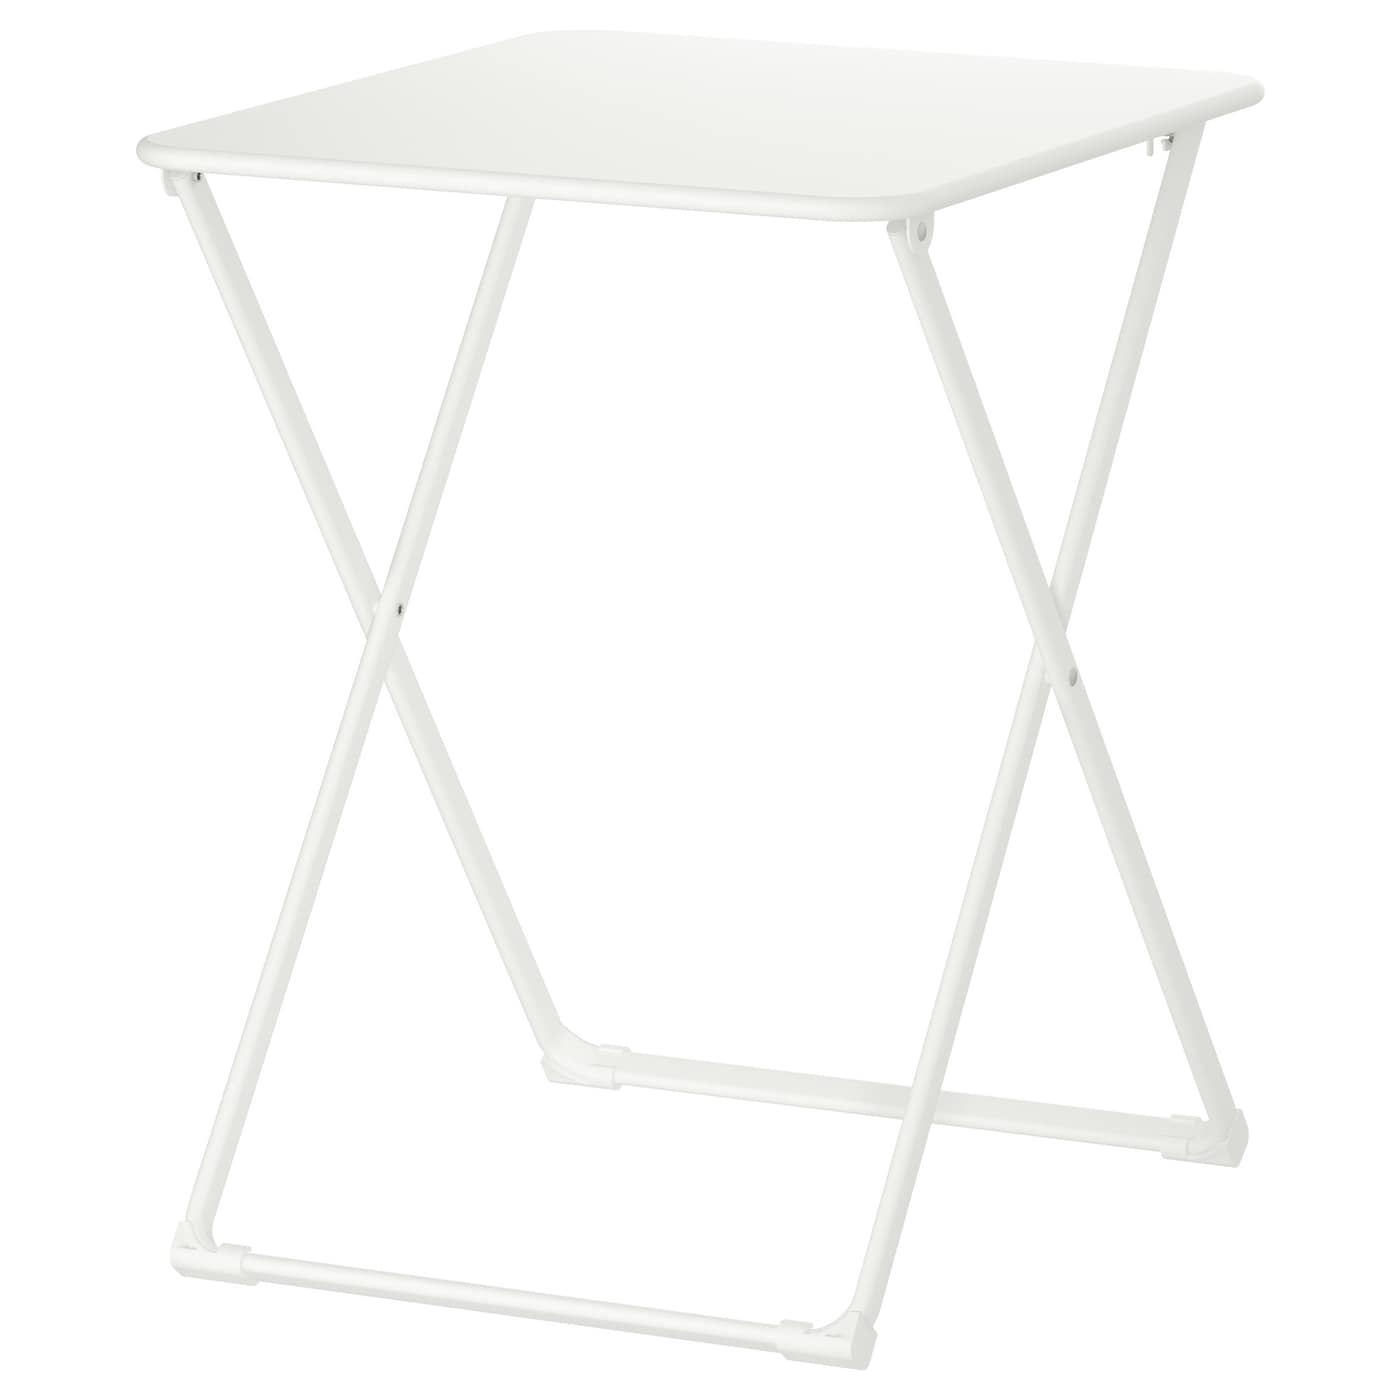 Ikea HÄrÖ Table Outdoor Easy To Fold Up And Put Away